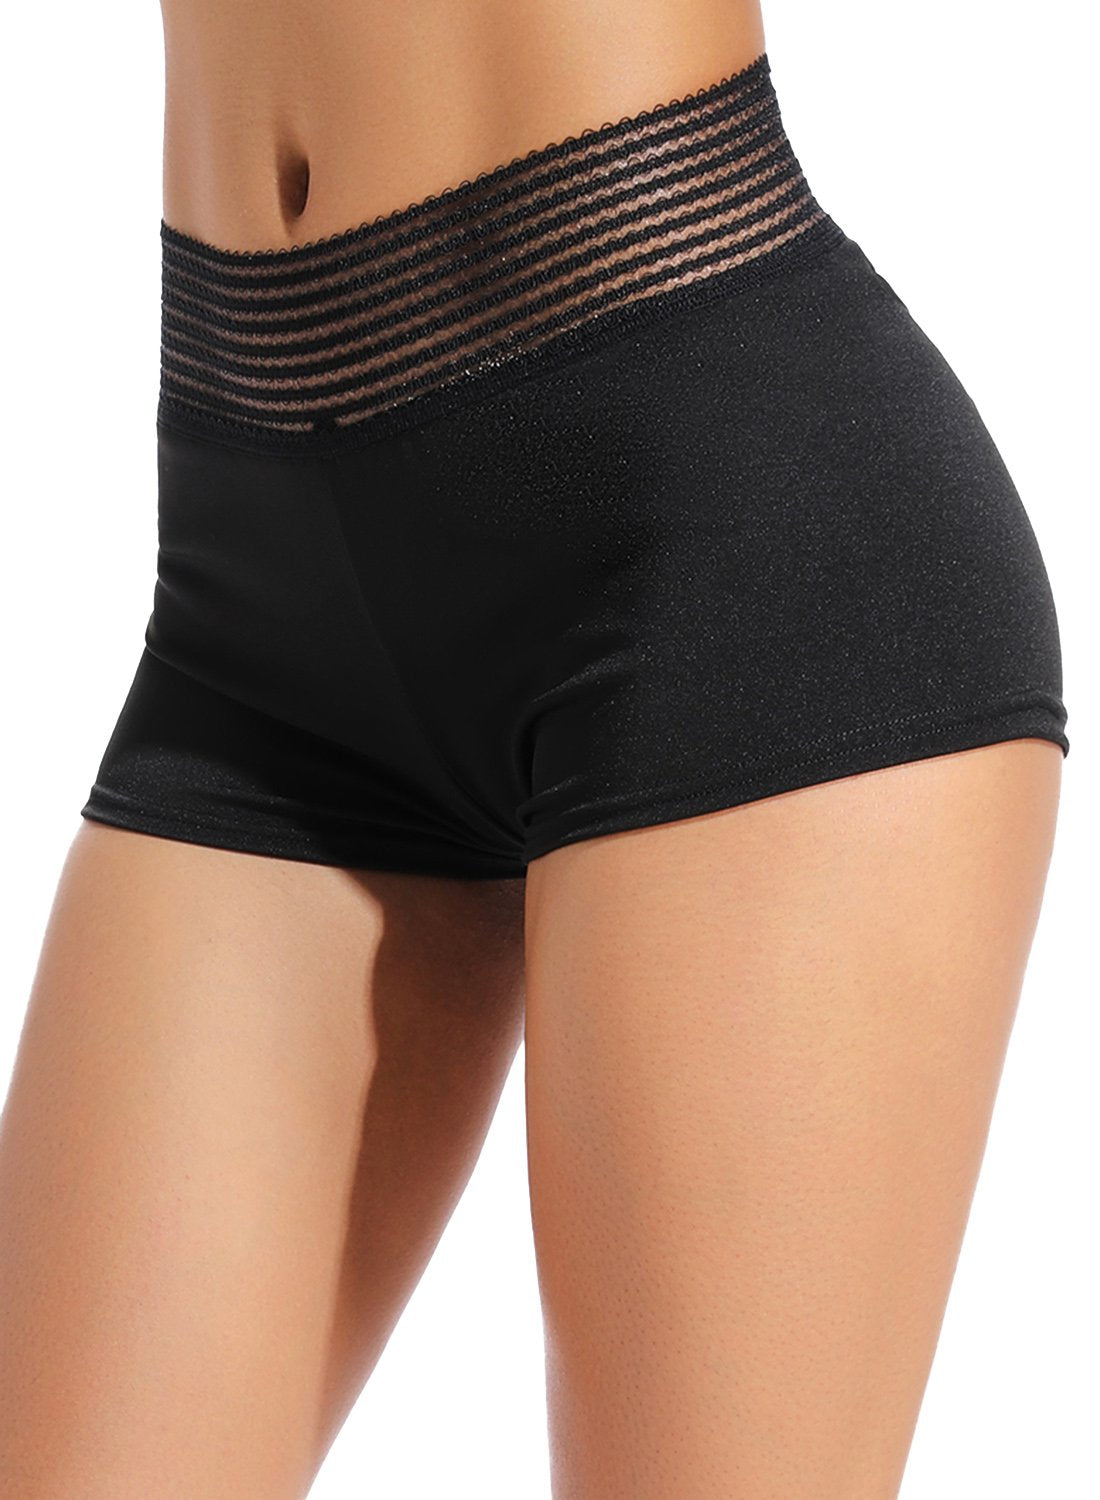 Athletic Non See-through Mesh Shorts